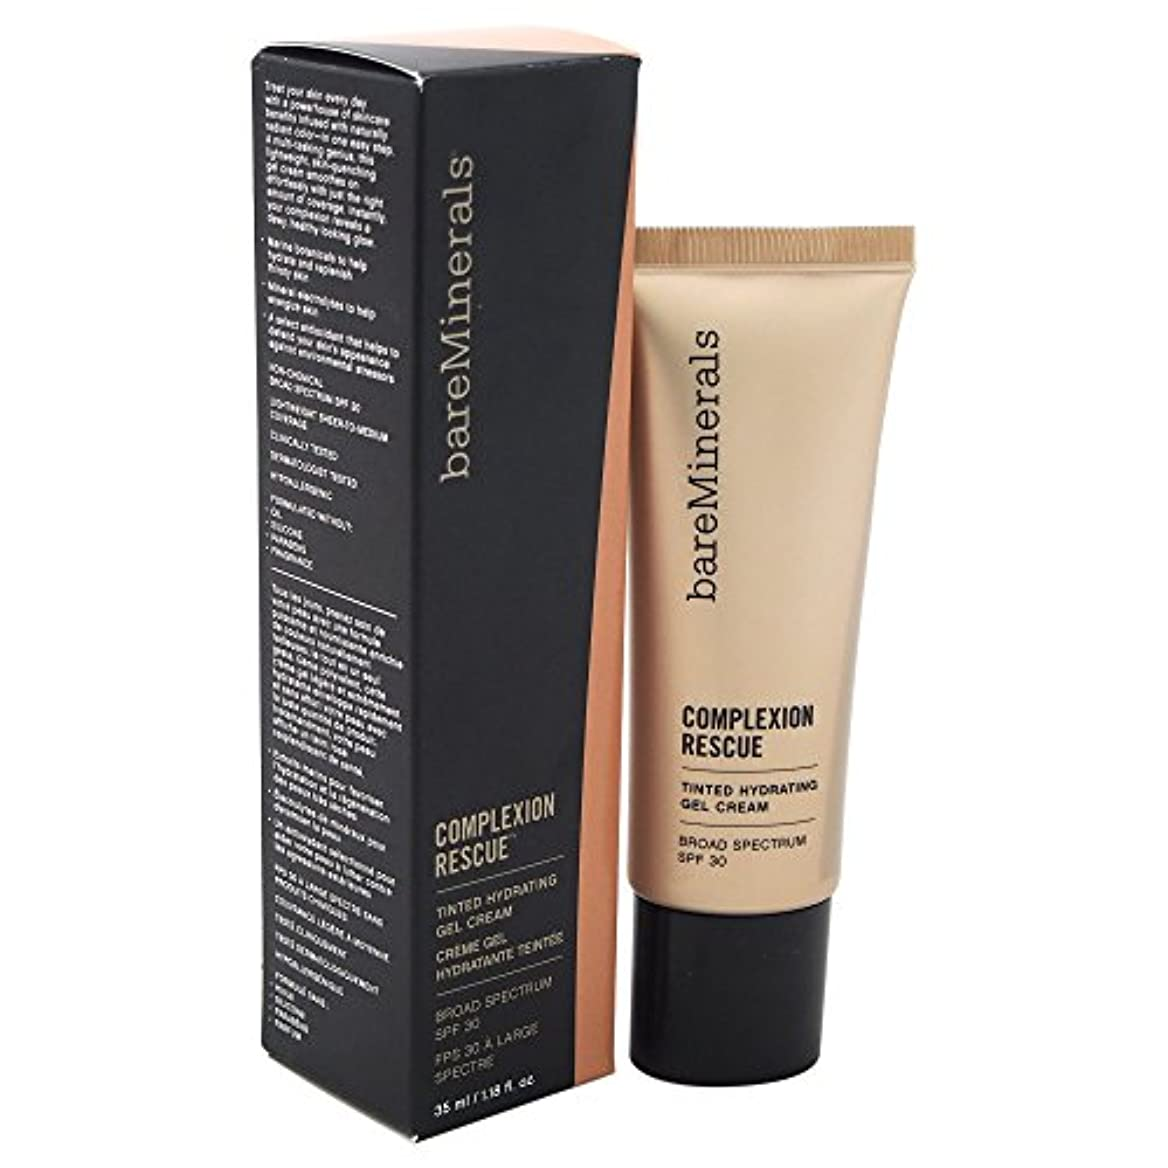 Bare Minerals Complexion Rescue Tinted Hydrating Gel Cream Tan 07 35ml